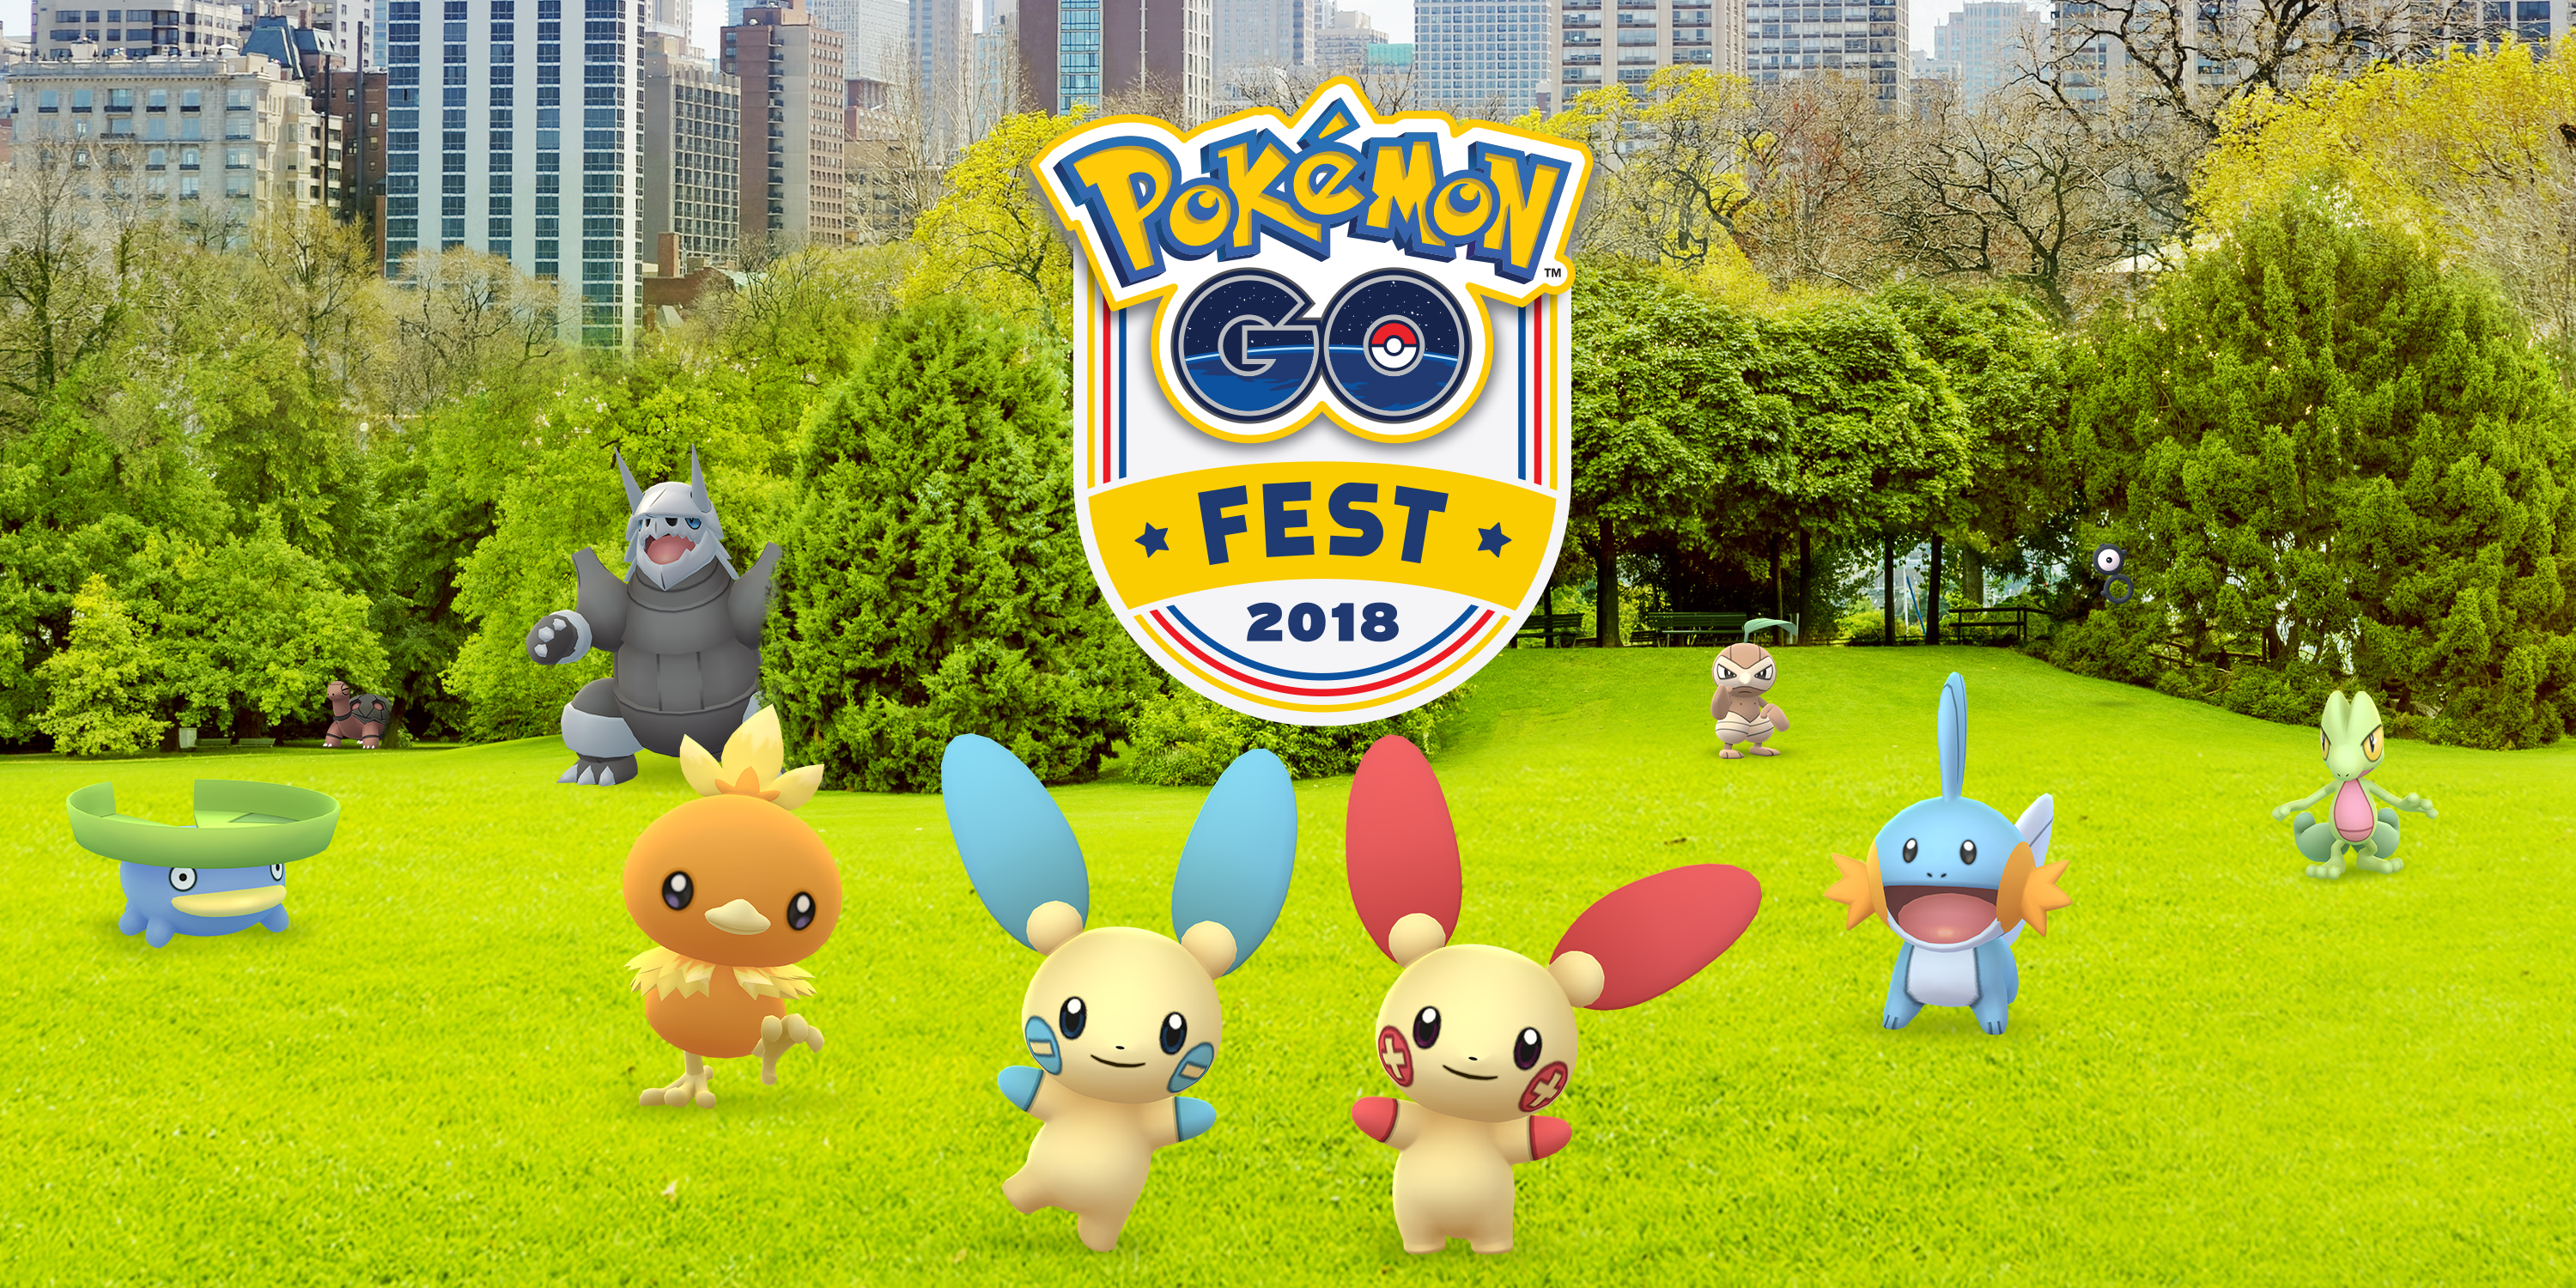 Photo of Pokemon Go Fest 2018 New Global Challenge Confirmed